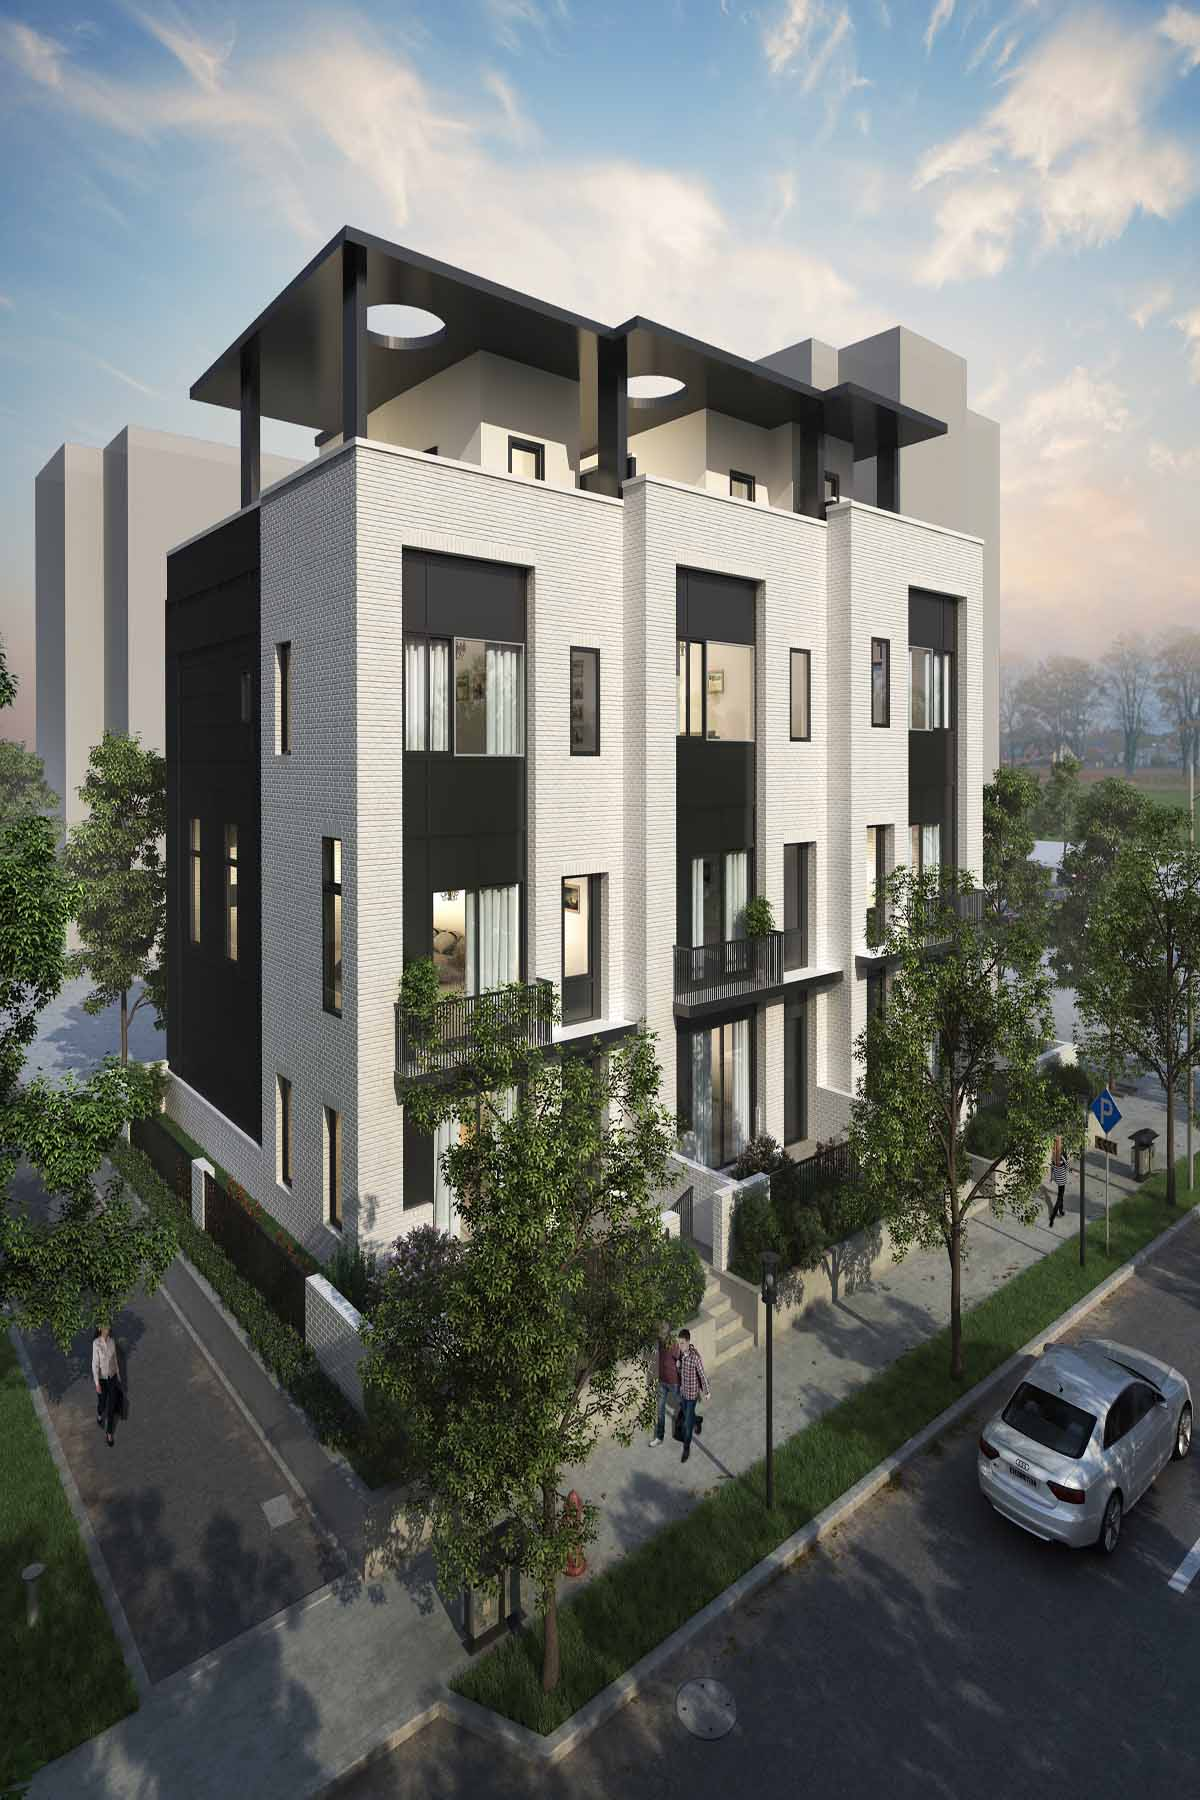 Casa unifamiliar adosada (Townhouse) por un Venta en Built by Award Winning TSW Architects and Cable Enterprises 1137 Ponce De Leon Avenue NE Unit 2 Atlanta, Georgia, 30306 Estados Unidos